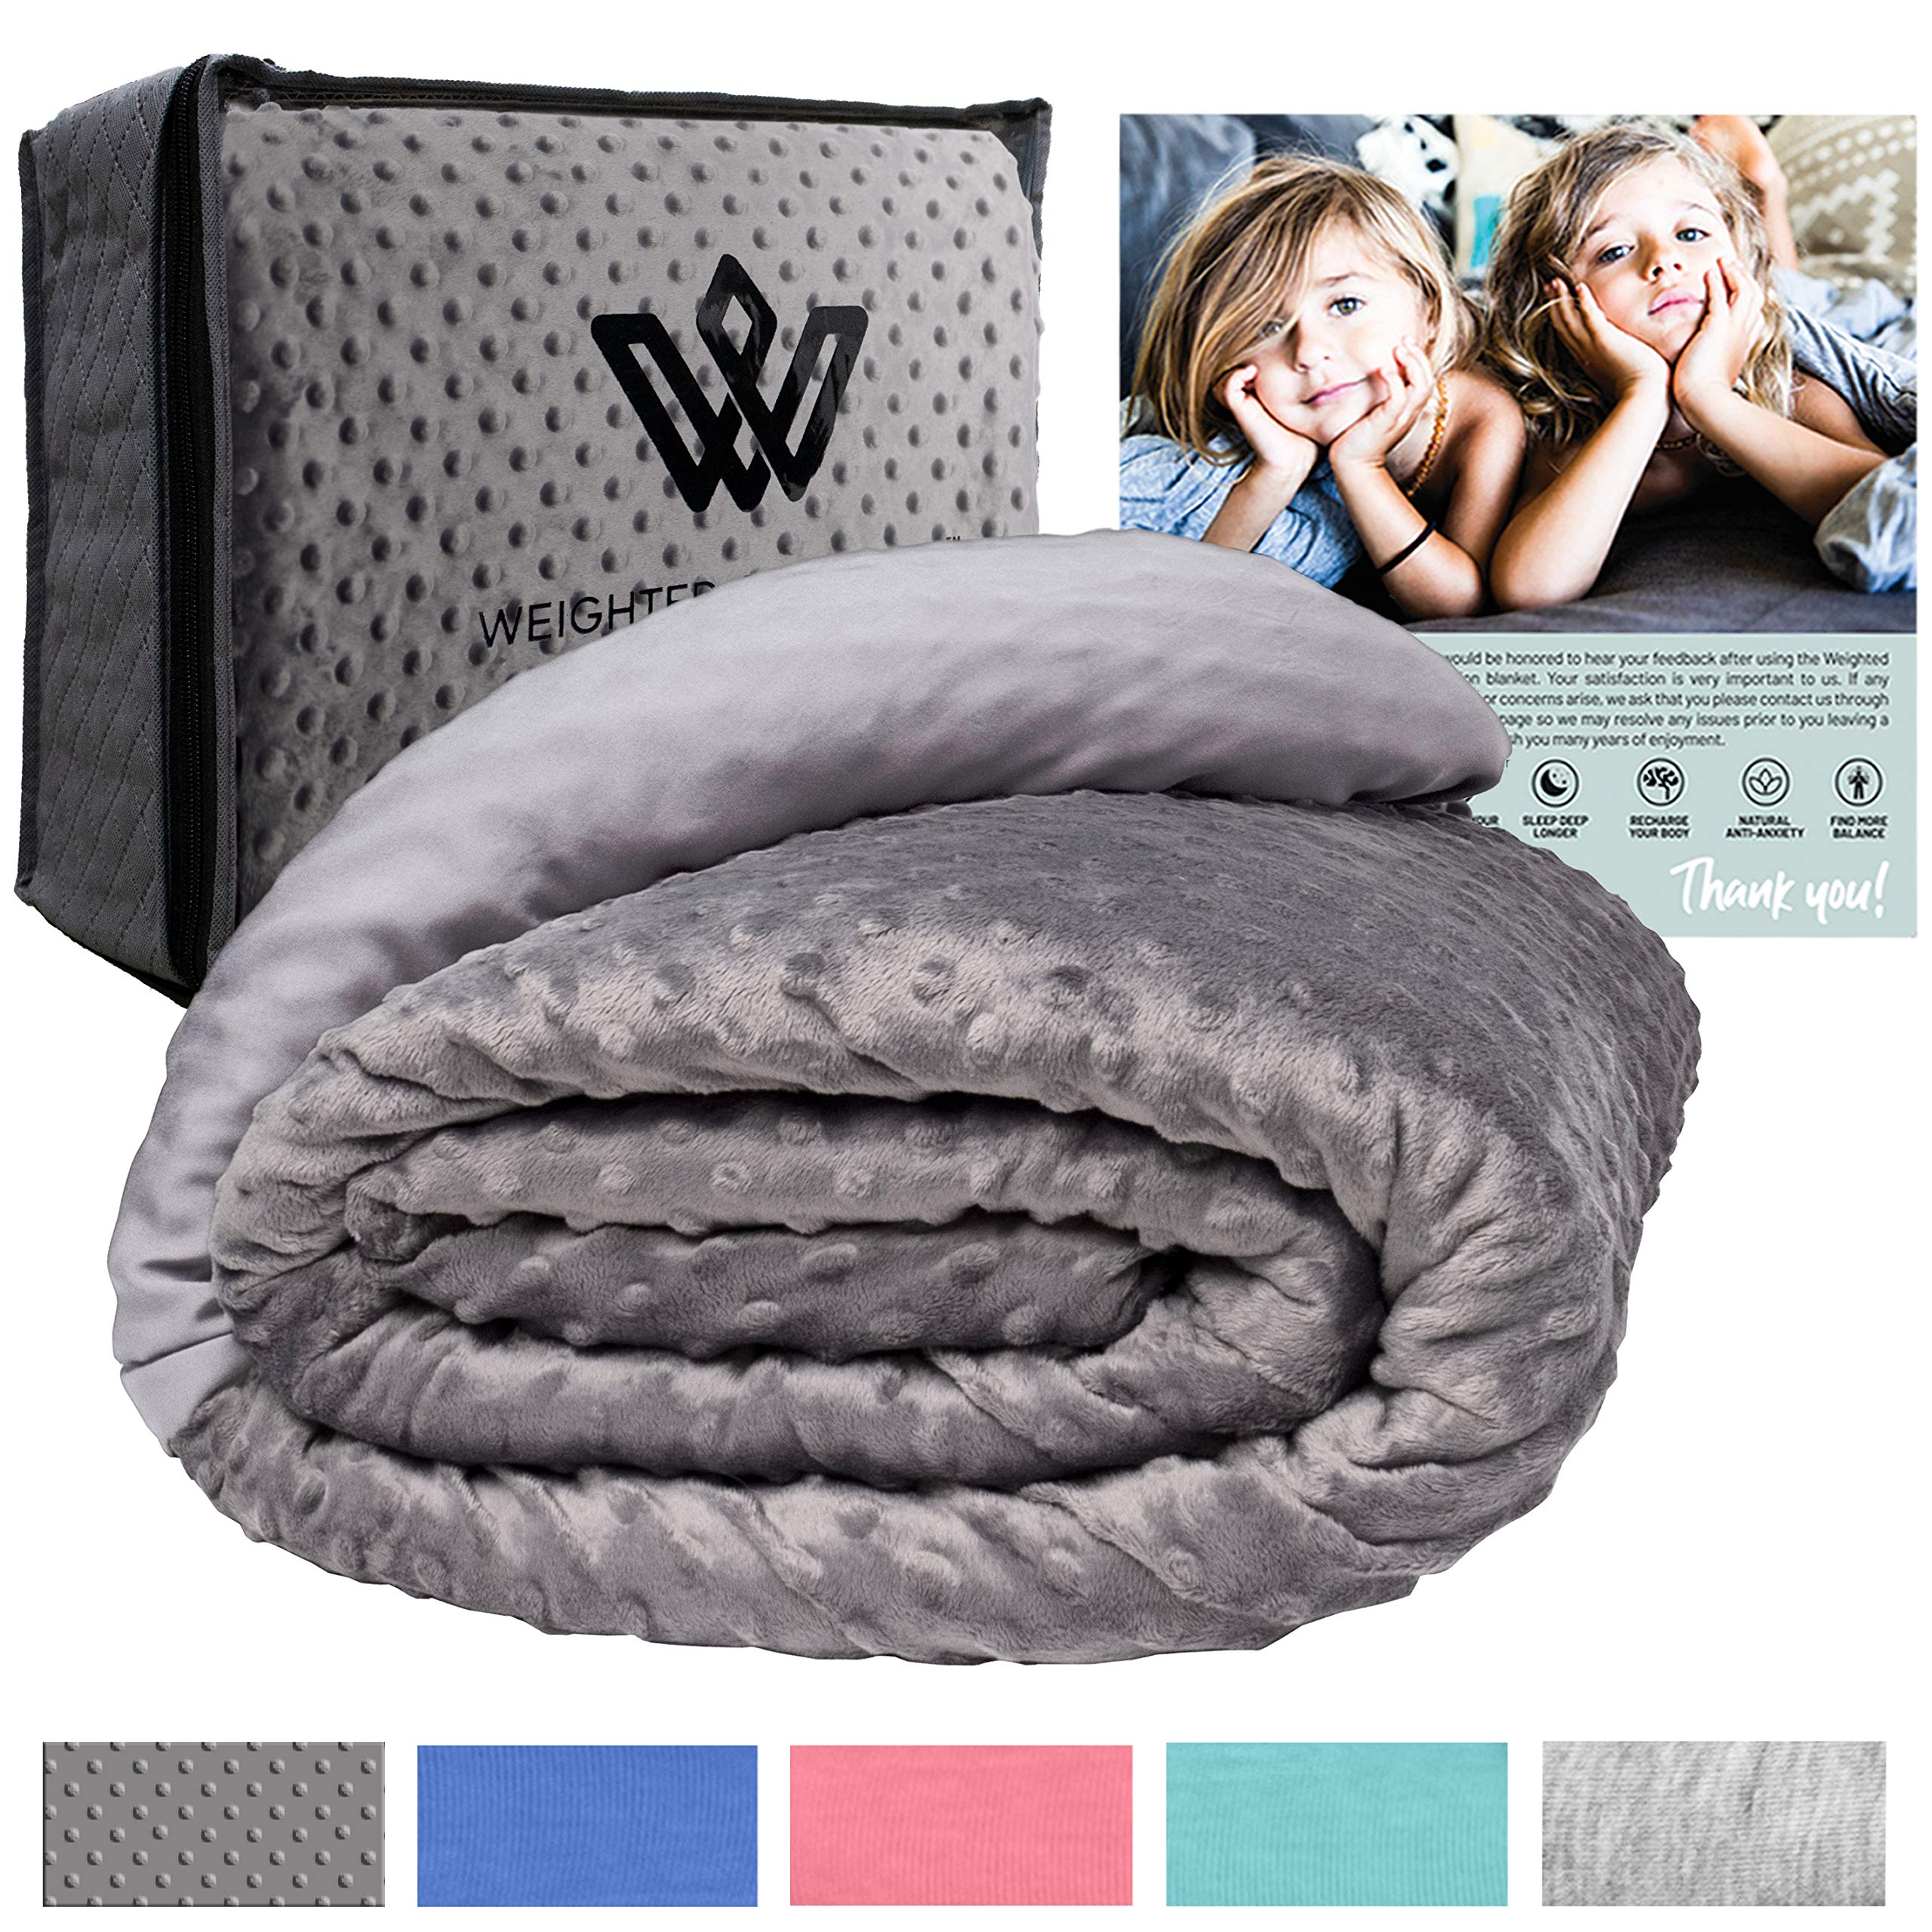 Weighted Evolution Weighted Blanket for Kids + Organic Bamboo Lyocell/Sensory Dot Cover Best Blanket for Kids-Hypoallergenic Warm Cooling Calm Cozy Heavy Blanket(Minky/Bamboo, 41''x 60''| 08 lbs) by Weighted Evolution